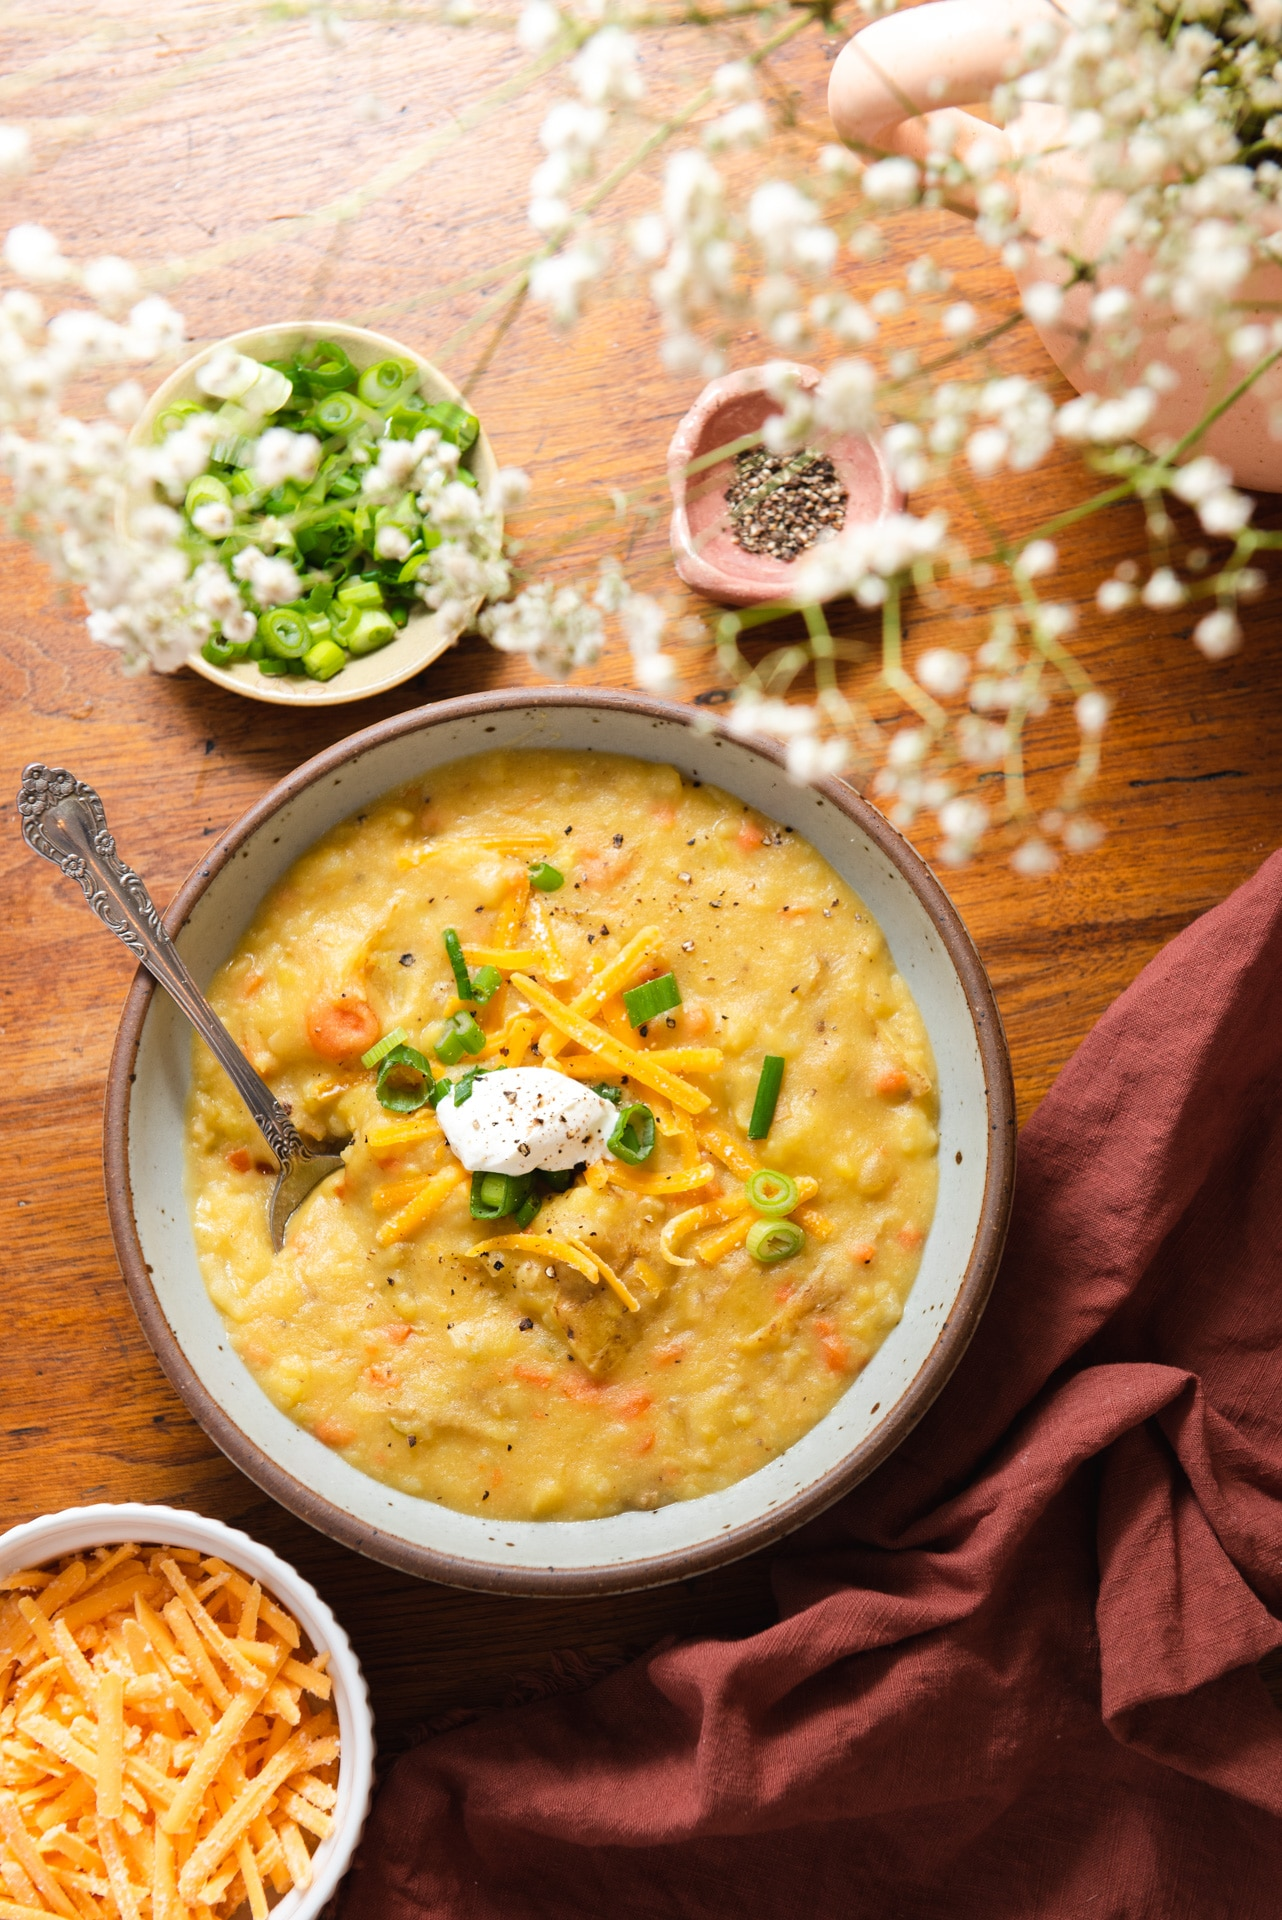 Potato soup in gray bowl surrounded by green onions and out of focus white flowers